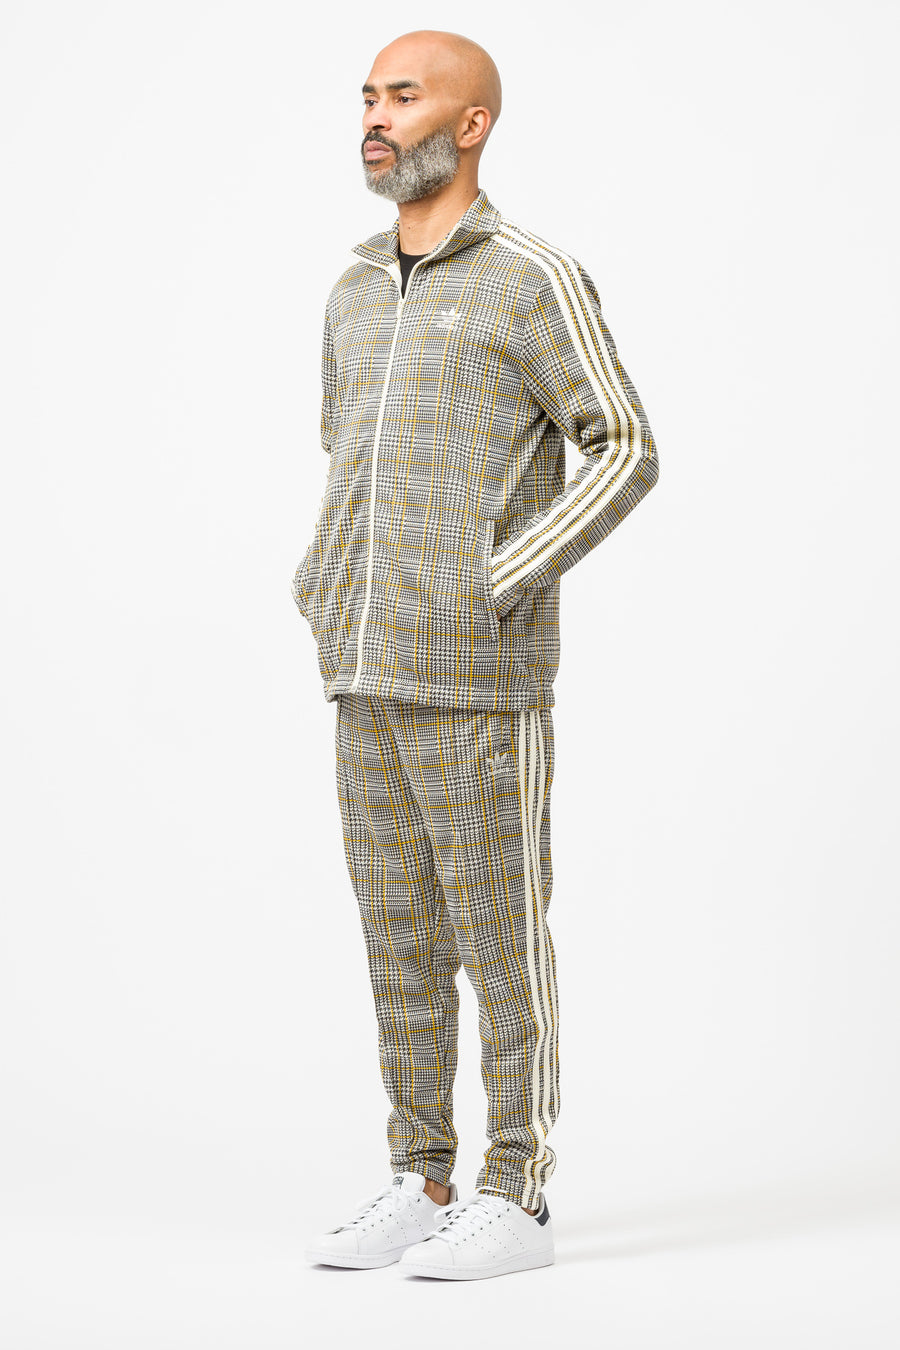 adidas Tartan Track Top in Multi/White - Notre